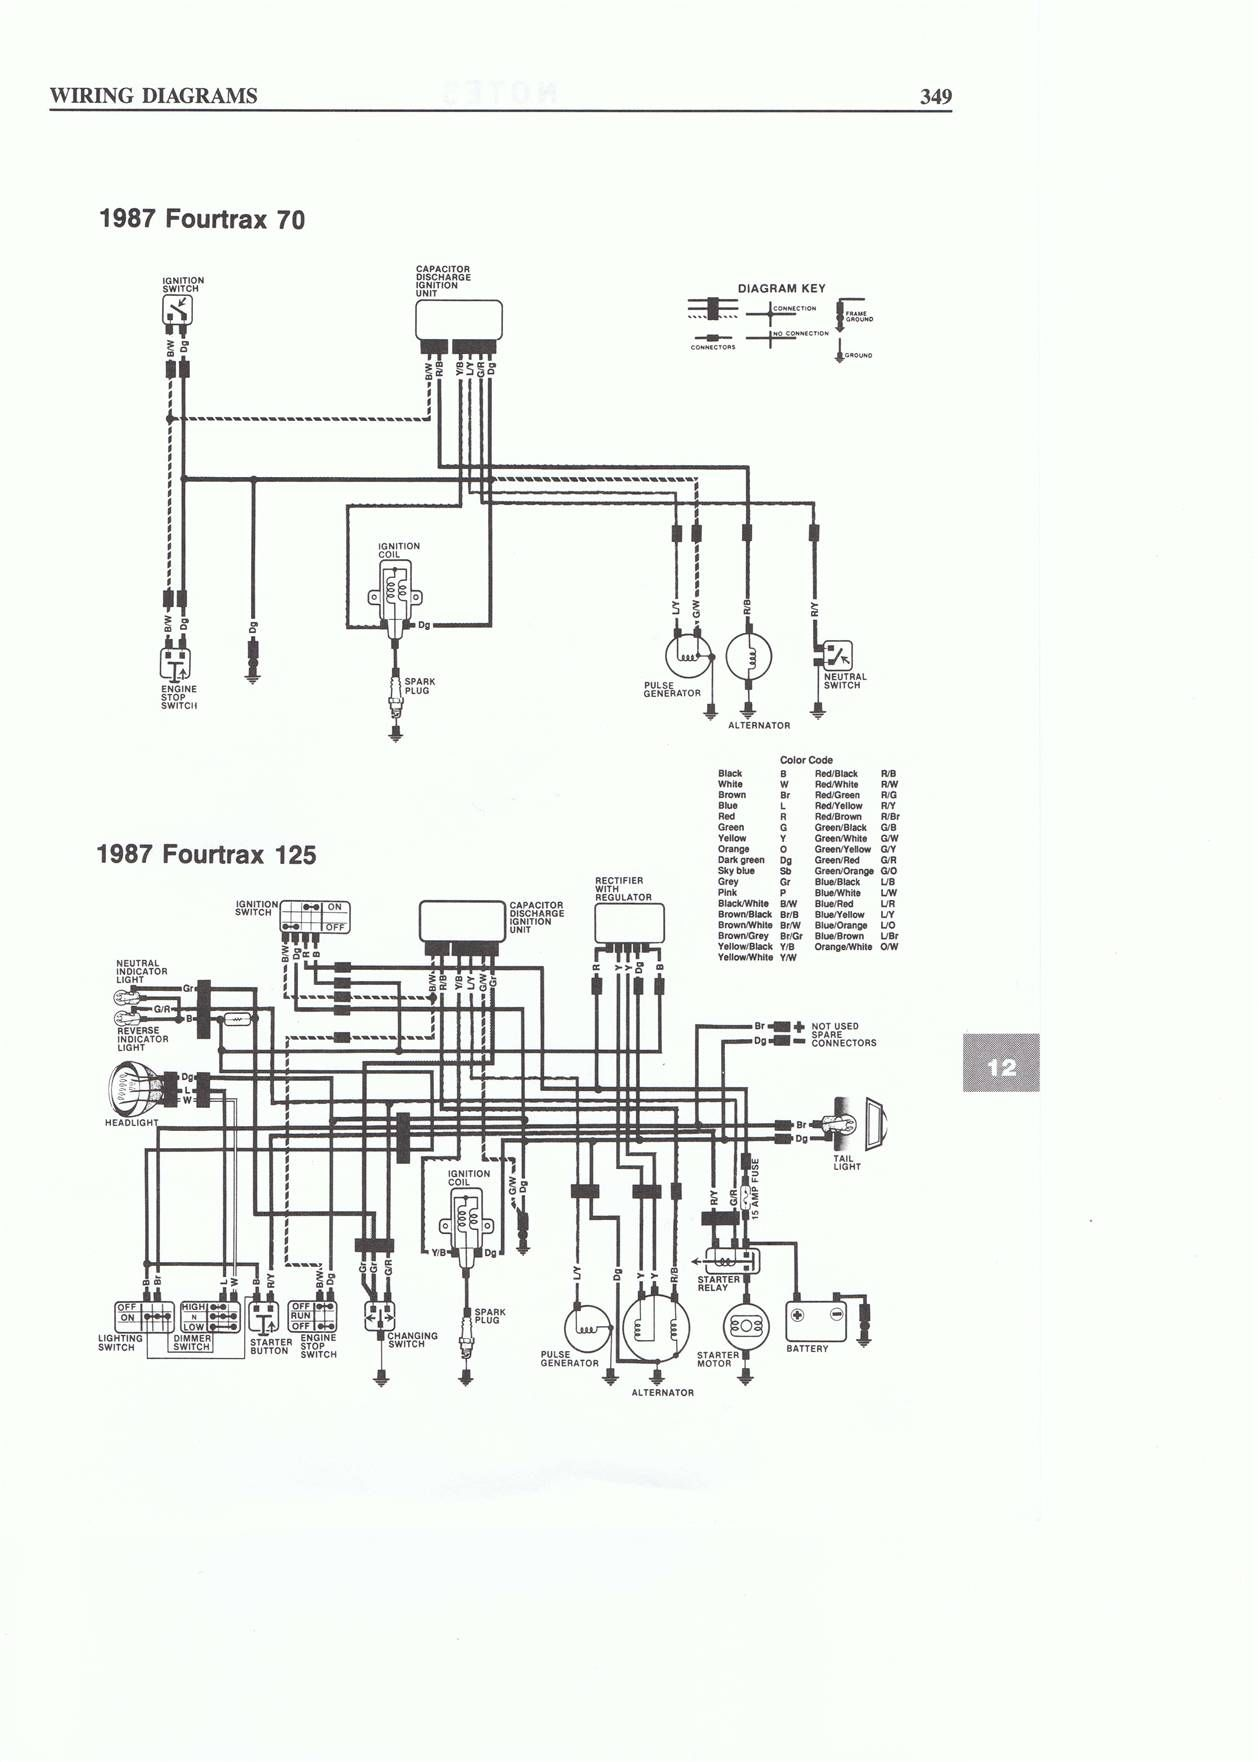 small resolution of pin by marthie schonstein on diy and crafts diagram engineering wire gy6 150cc engine parts diagram gy6 engine diagram